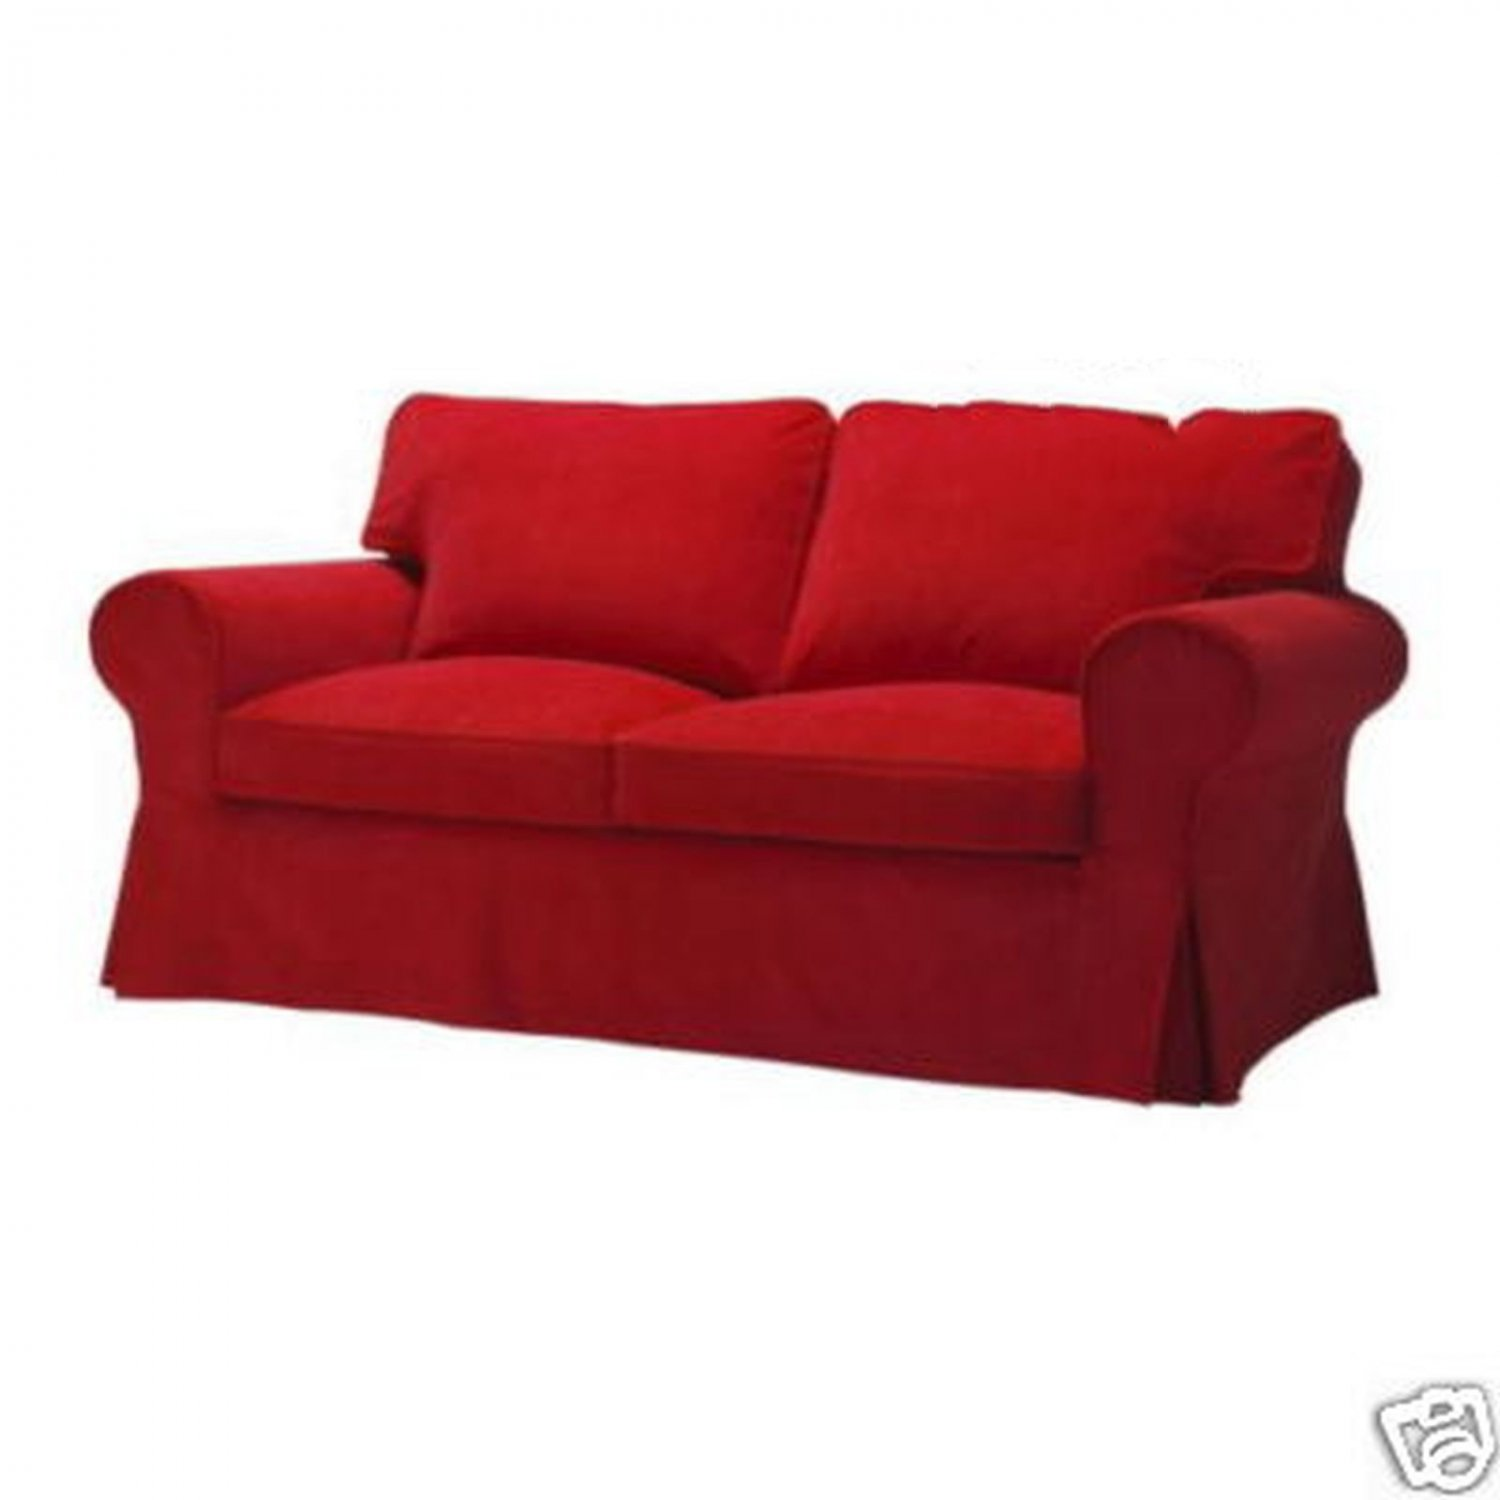 Ikea ektorp 2 seat loveseat sofa slipcover cover leaby red corduroy xmas limited edition last one Loveseat slip cover